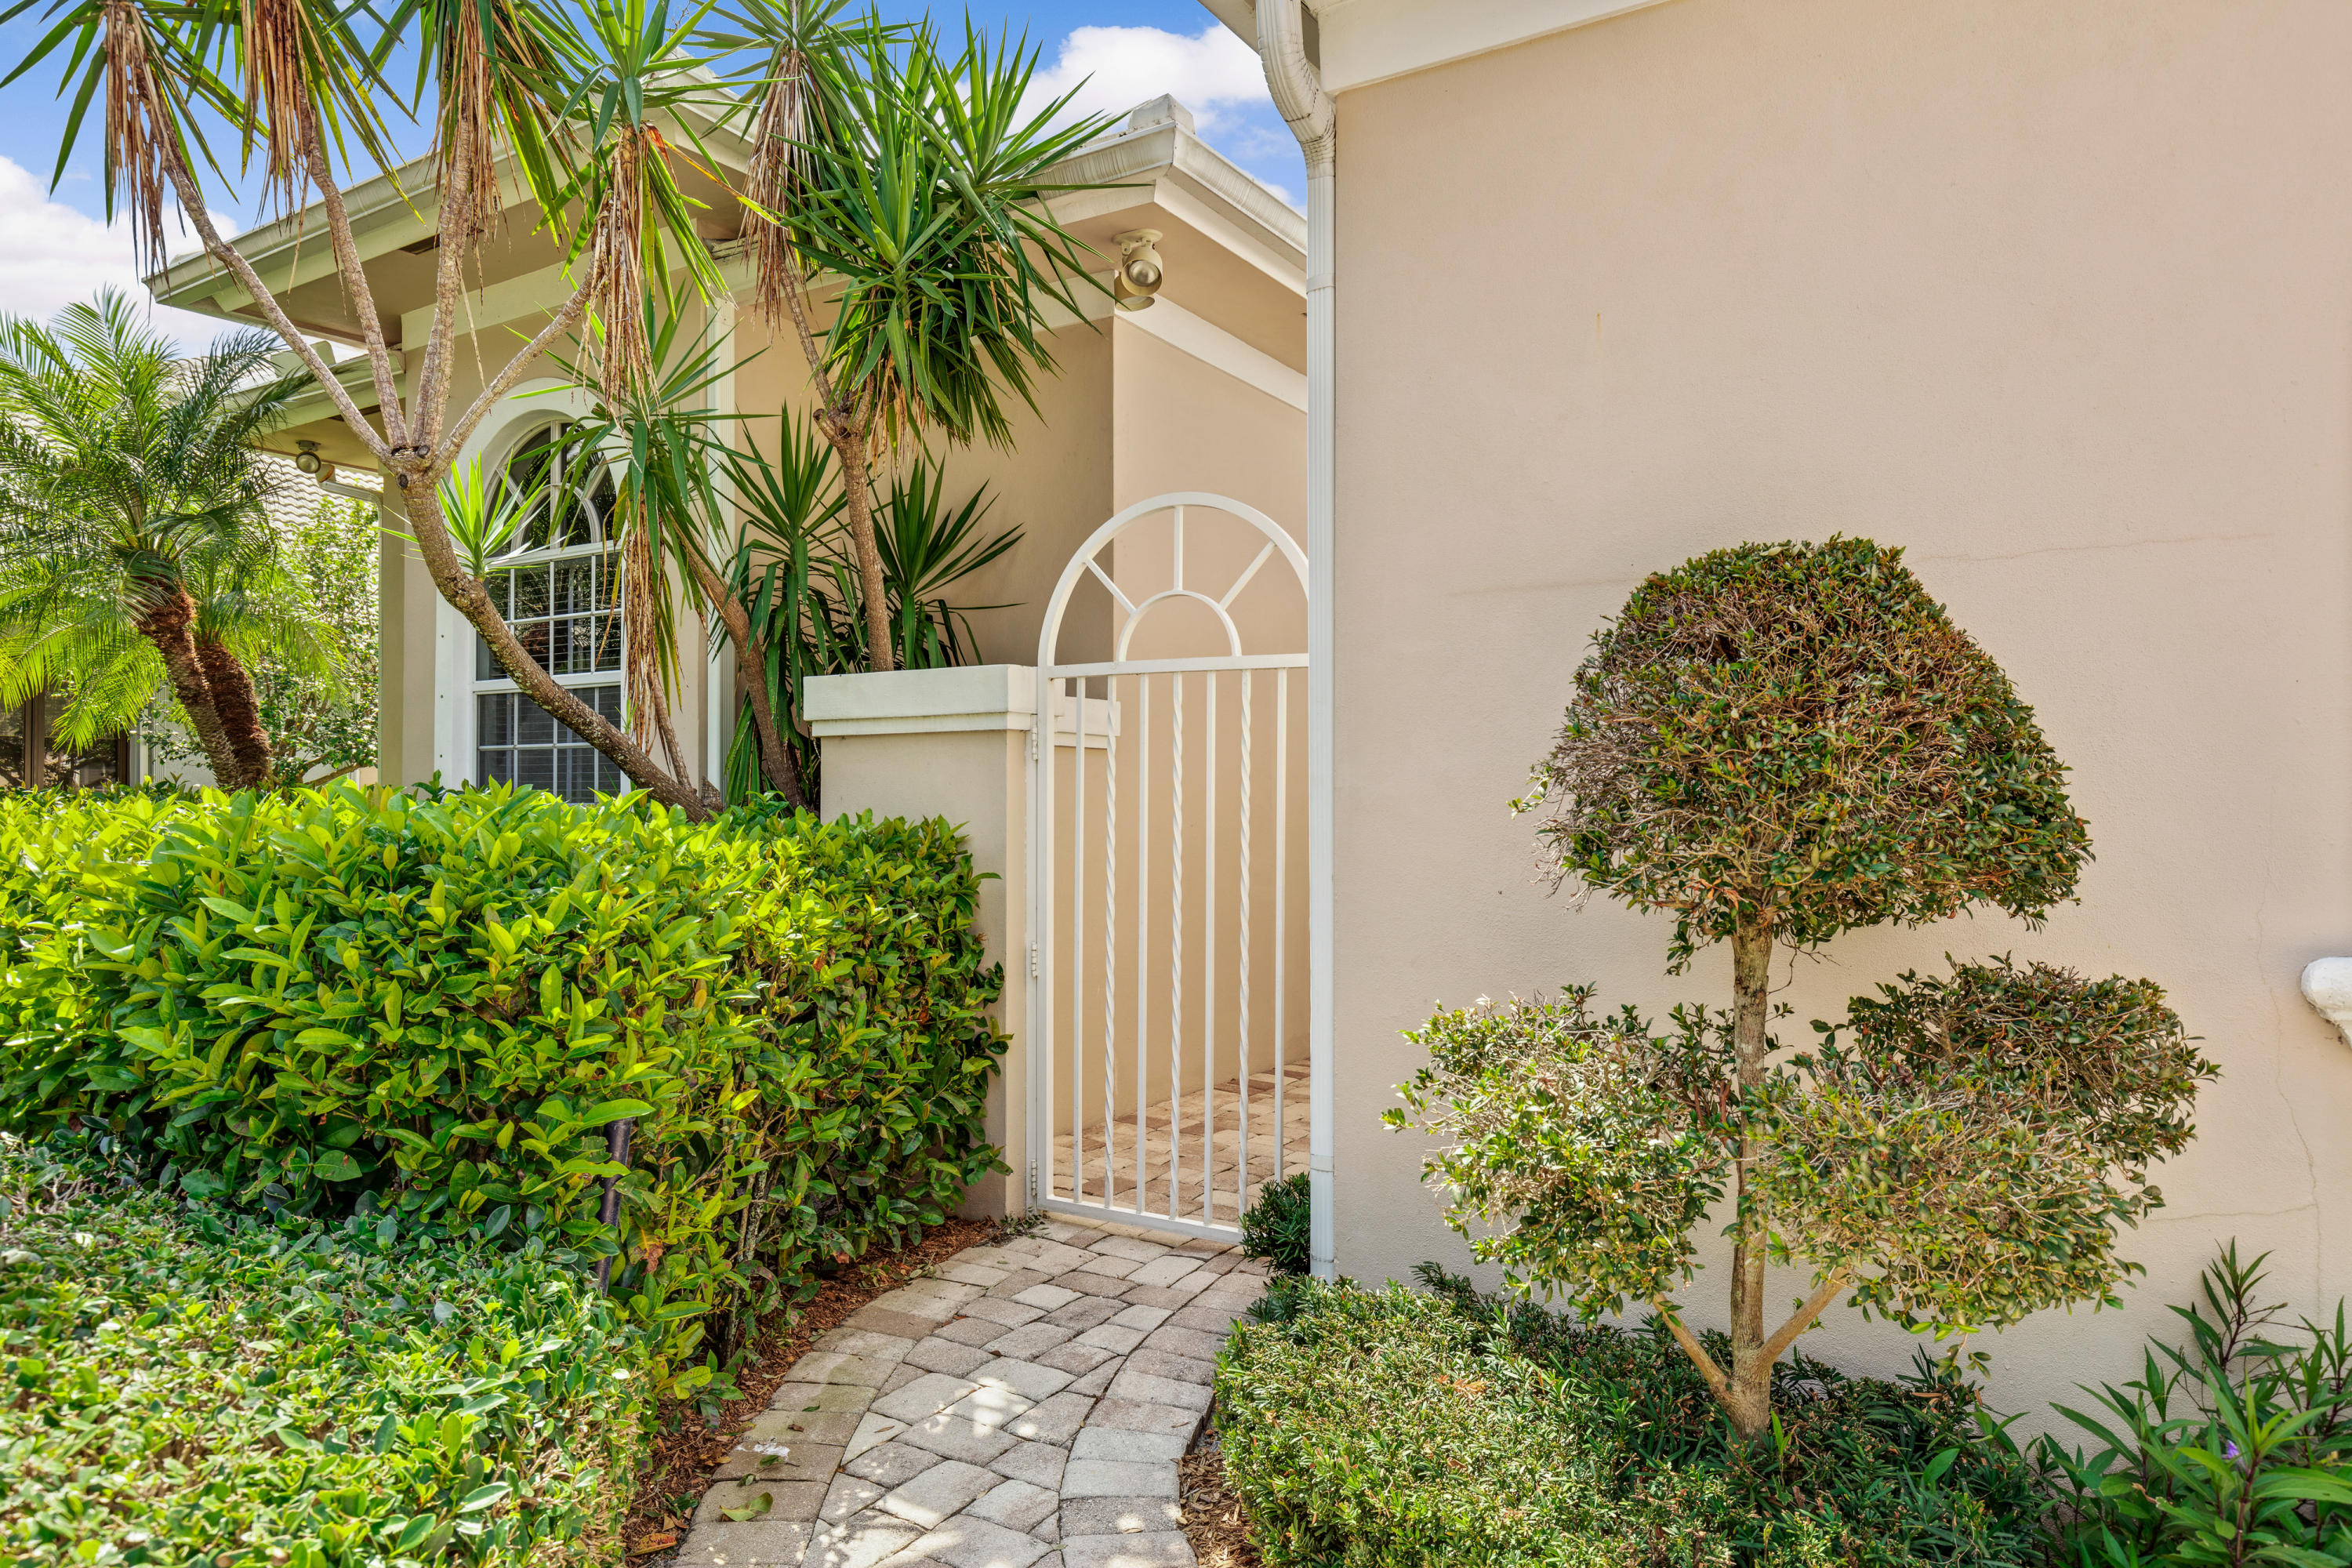 188 Commodore Drive, Jupiter, Florida 33477, 5 Bedrooms Bedrooms, ,5.1 BathroomsBathrooms,A,Single family,Commodore,RX-10496790